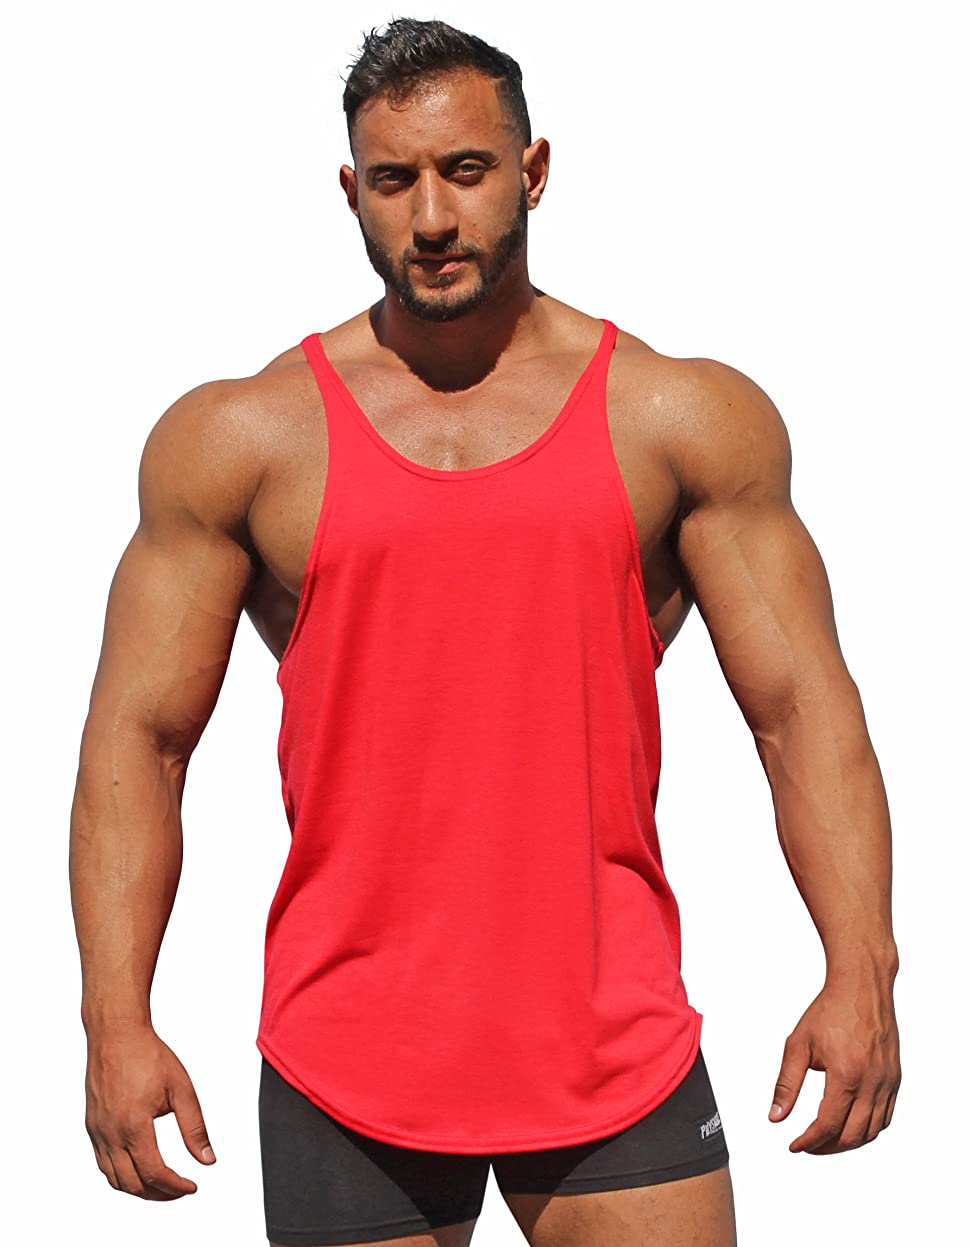 43b7e3e423118 Physique Bodyware Original Men s Y Back Stringer Tank Tops Made in America  For Over 27 Years